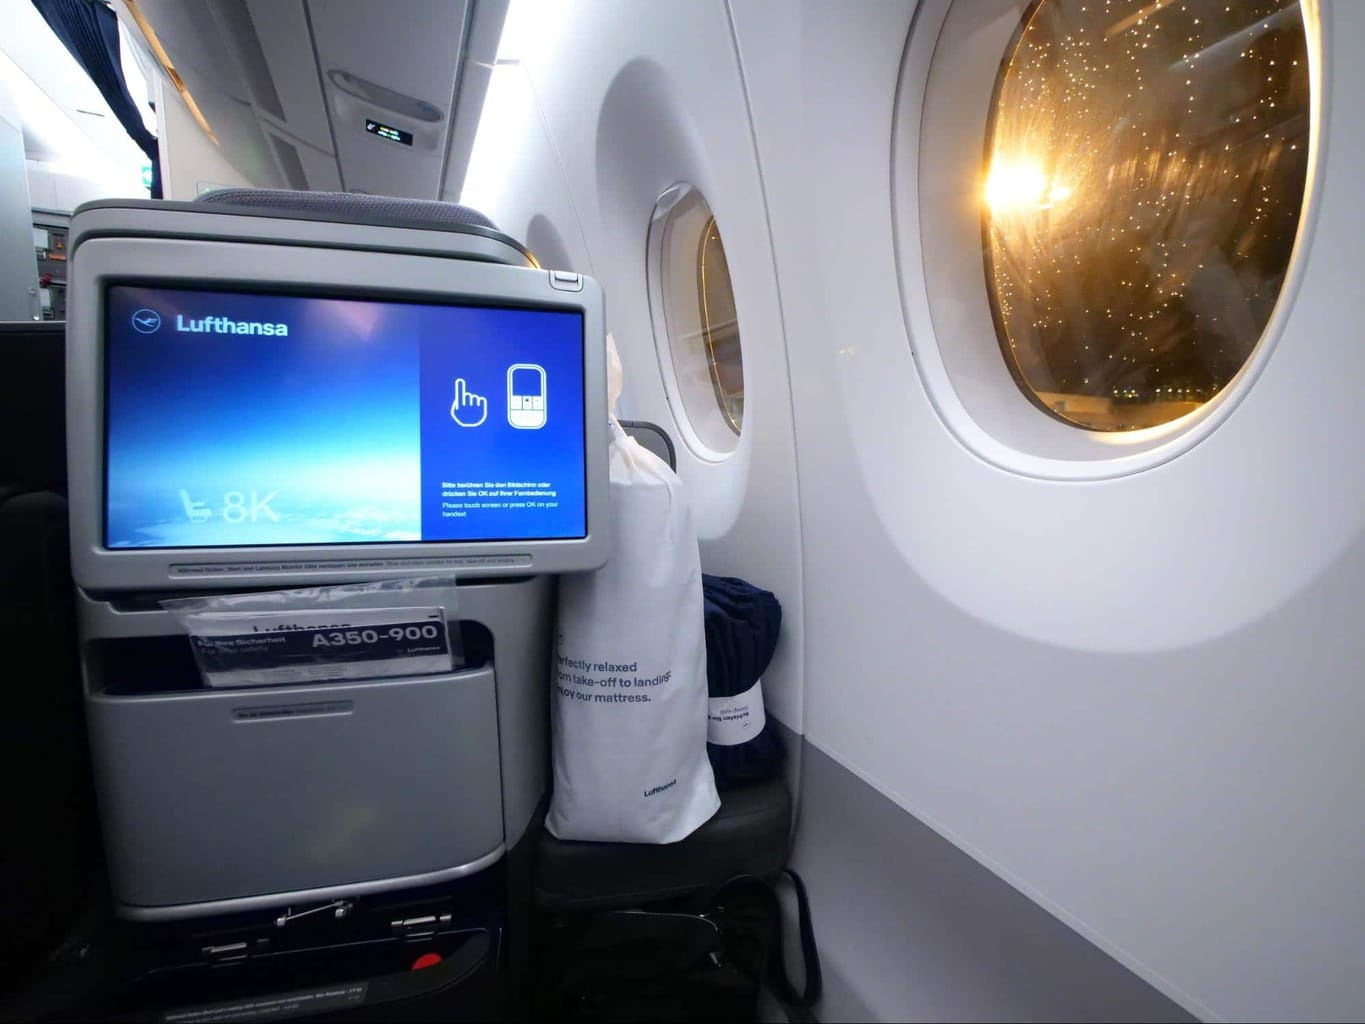 The sliding TV on Lufthansa Business Class